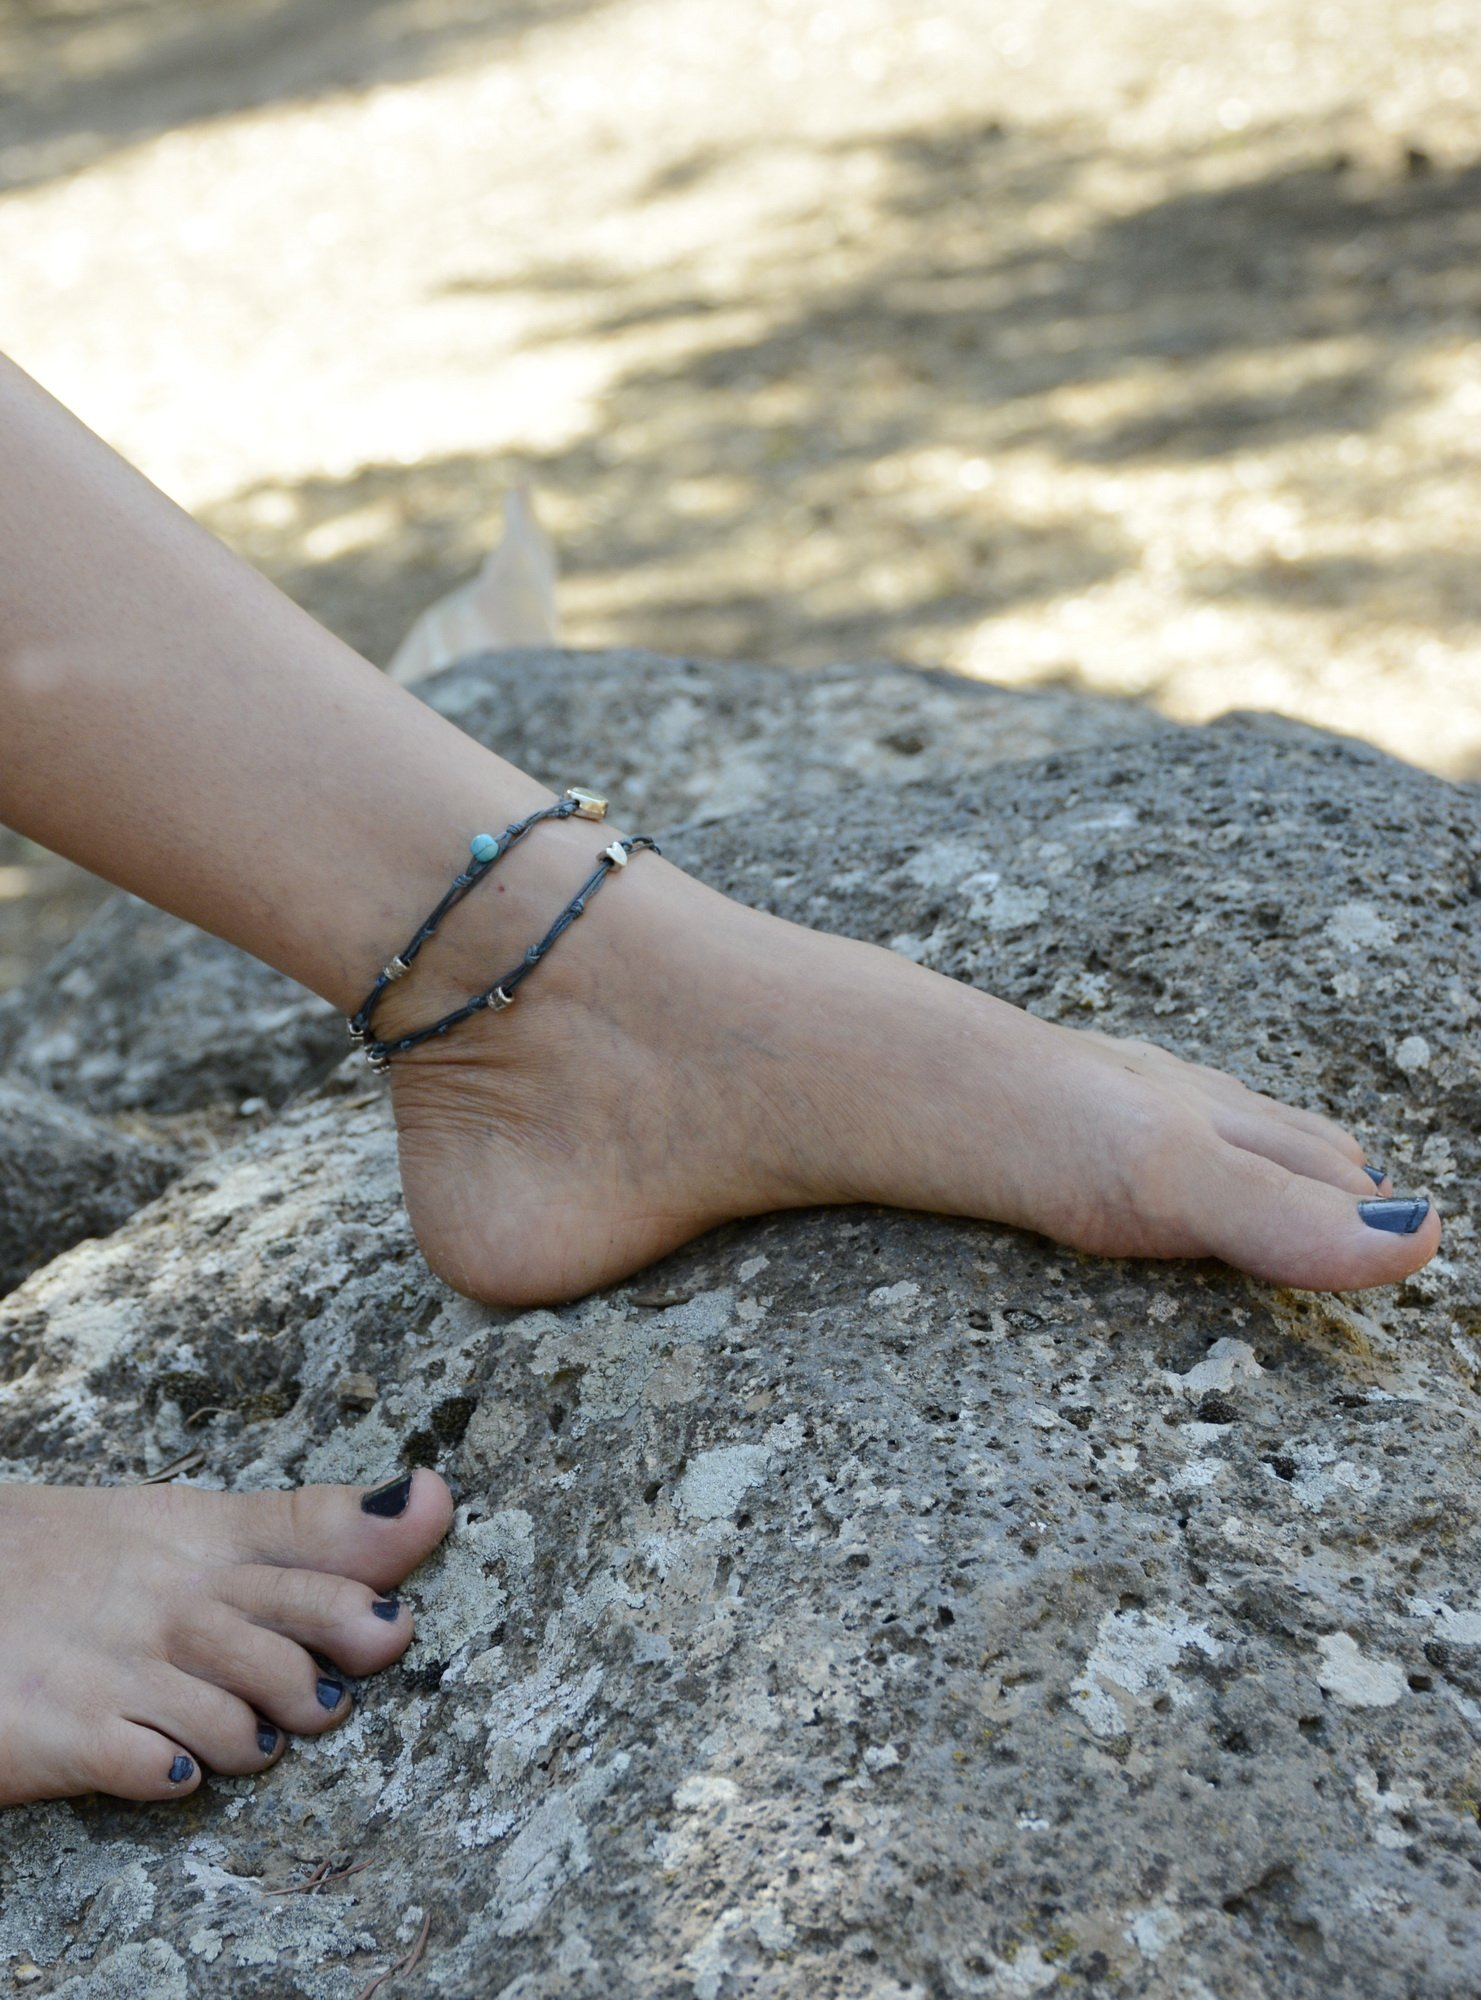 Handmade Denim Blue & Silver Double Wrap Anklet for Good Luck - 10.5'' by MIZZE Made for Luck (Image #4)